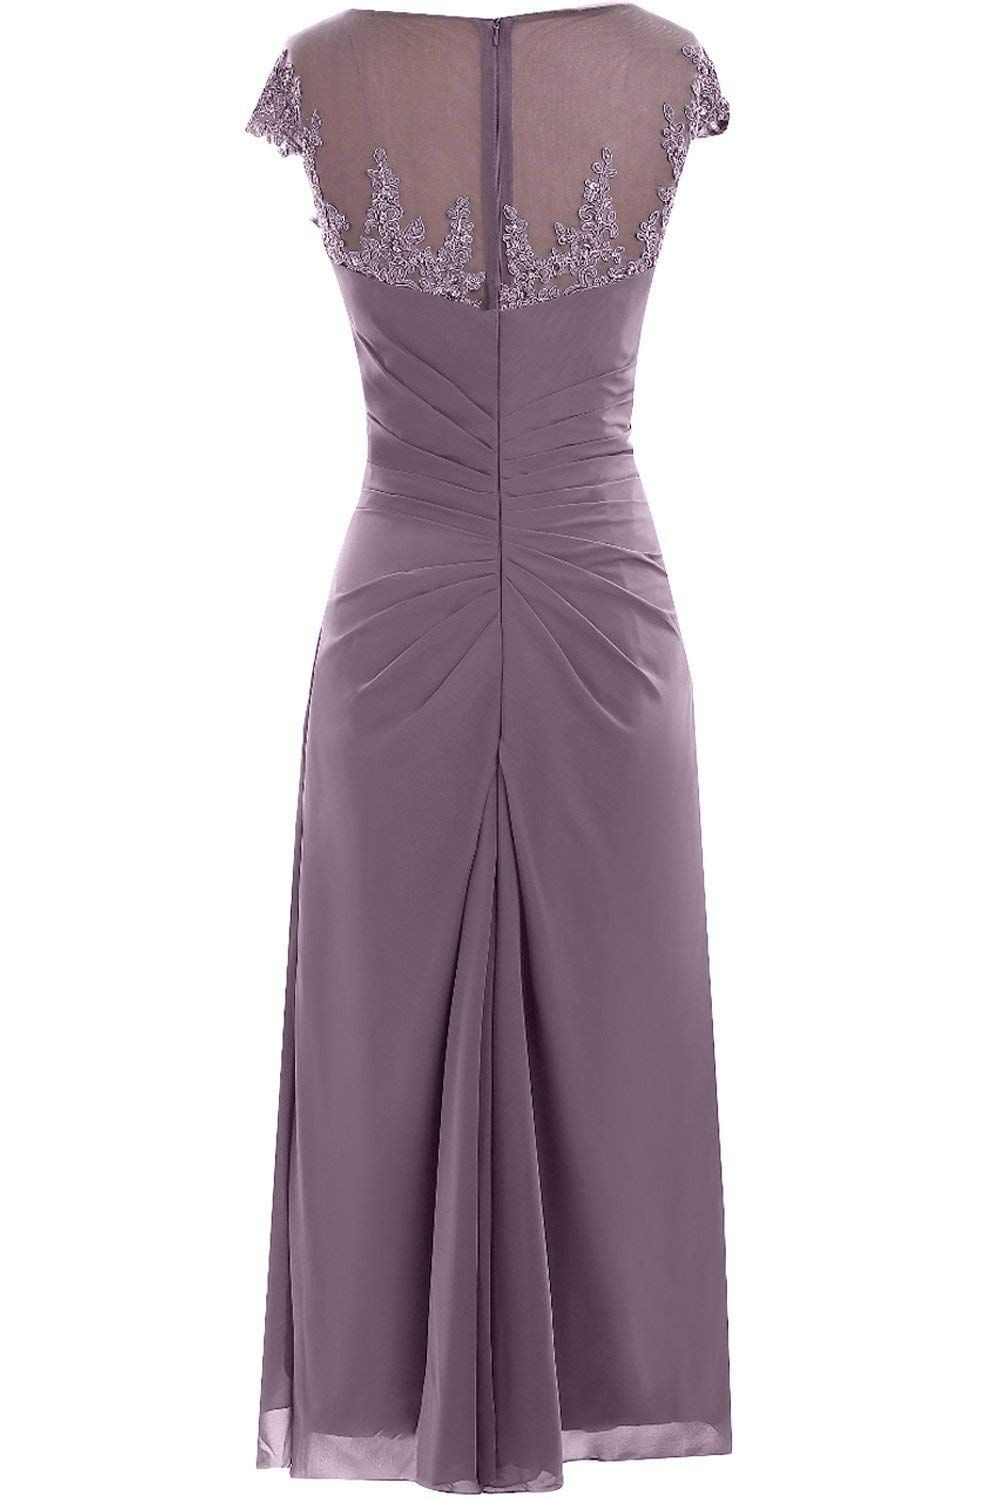 Qy Bride Woman S Chiffon Wedding Guest Formal Dresses With